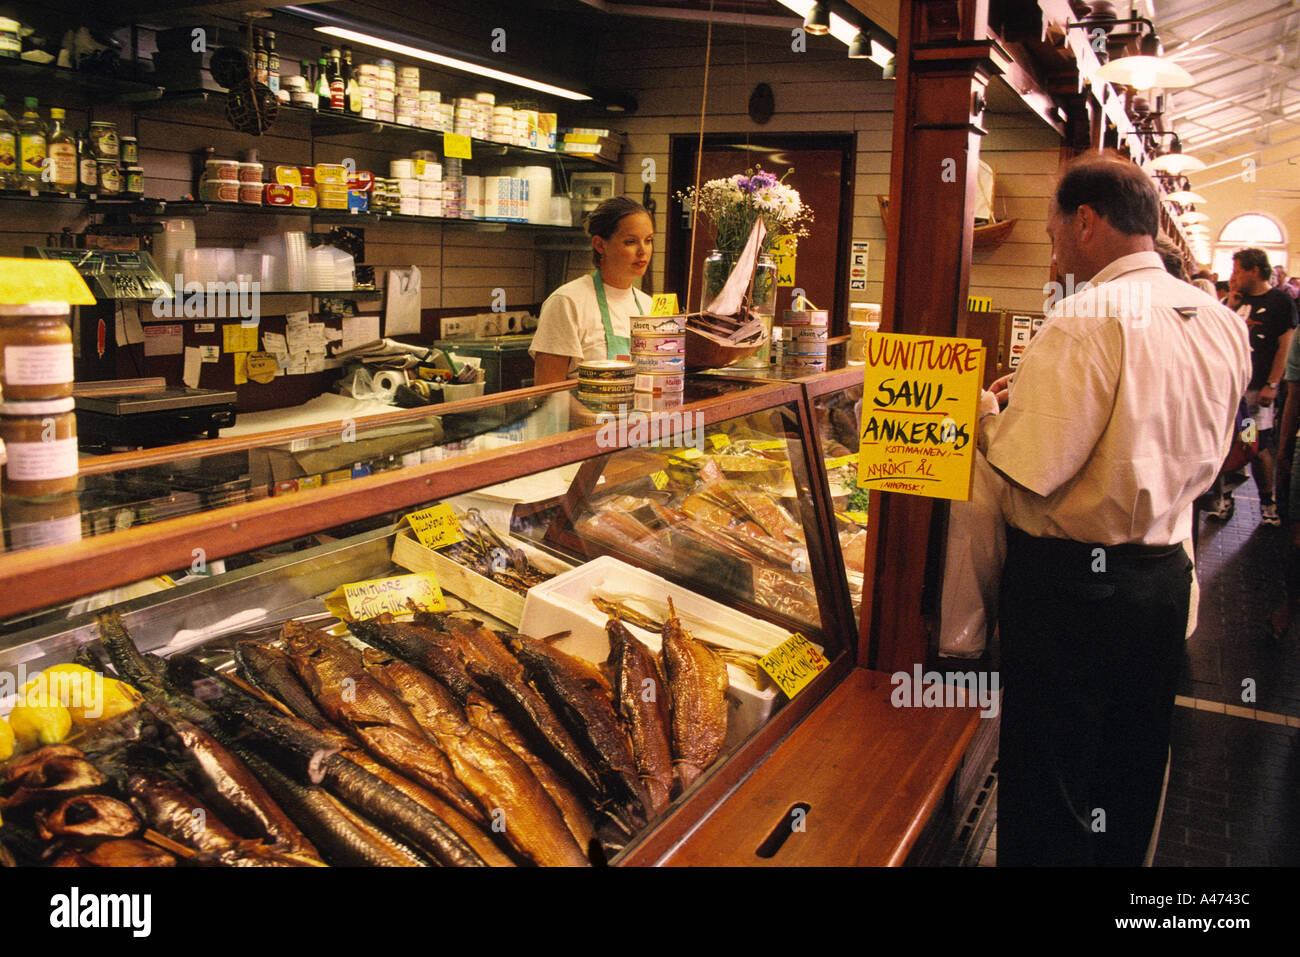 finland helsinki old market hall smoked fish seller stock photo 291900 alamy. Black Bedroom Furniture Sets. Home Design Ideas